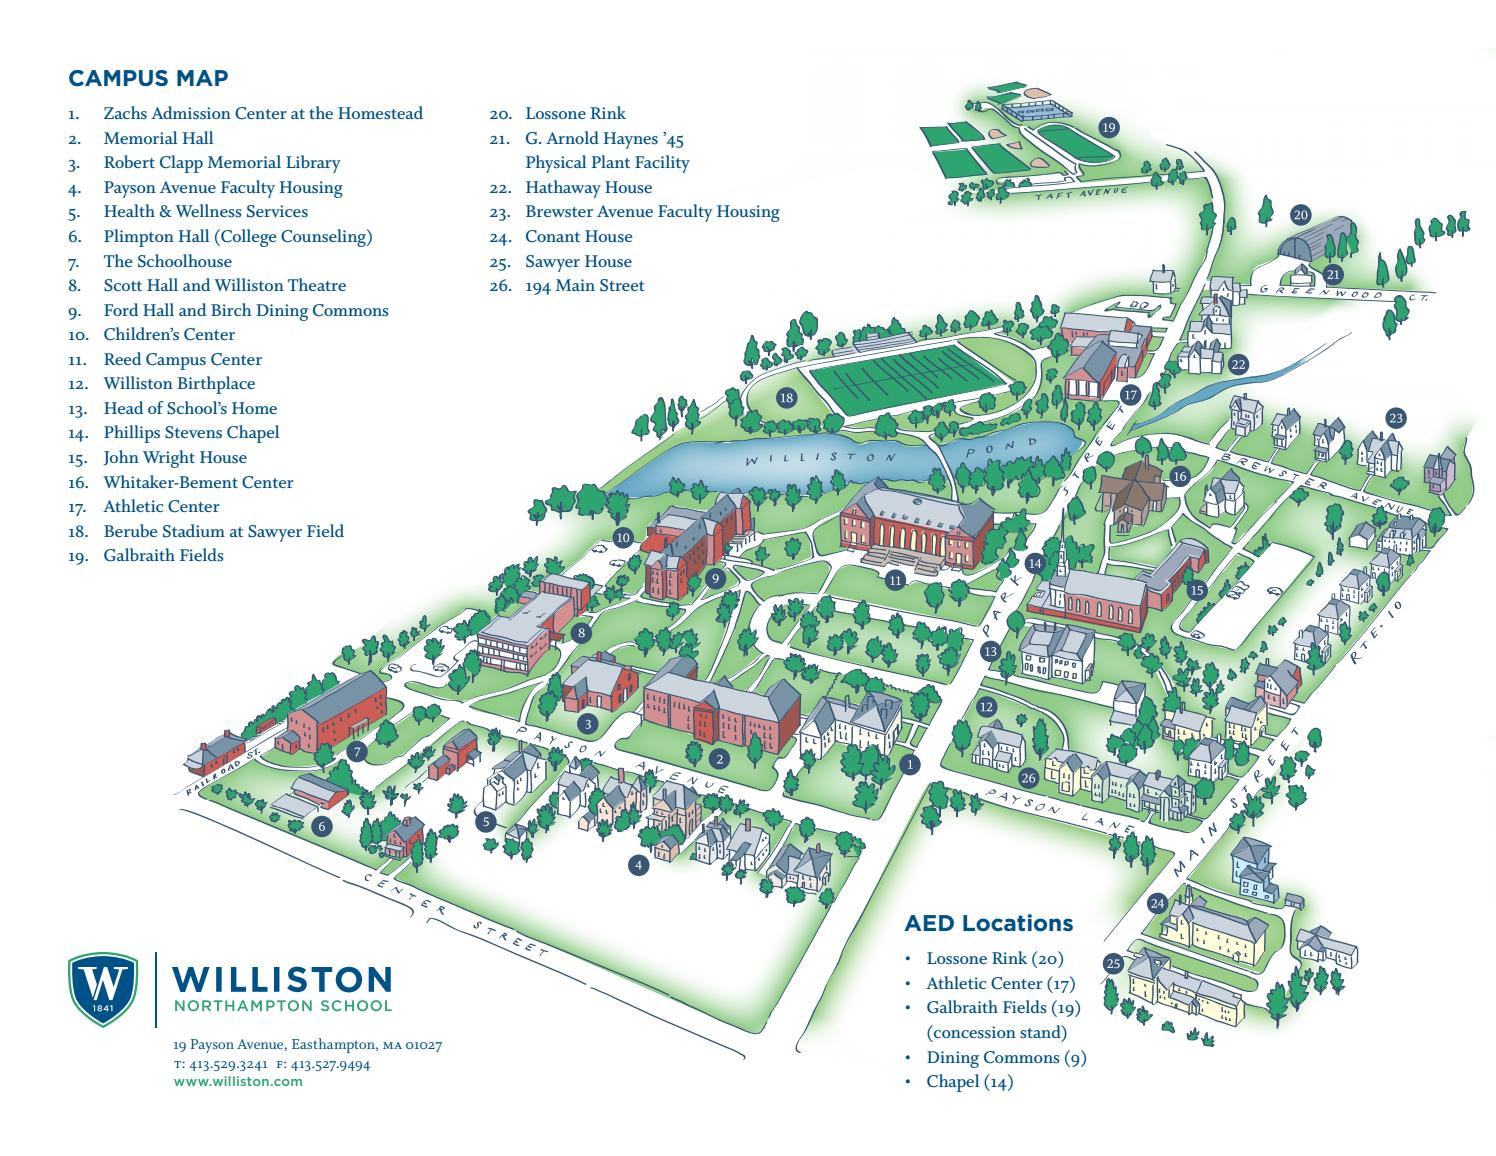 The williston northampton school campus map by williston for The williston